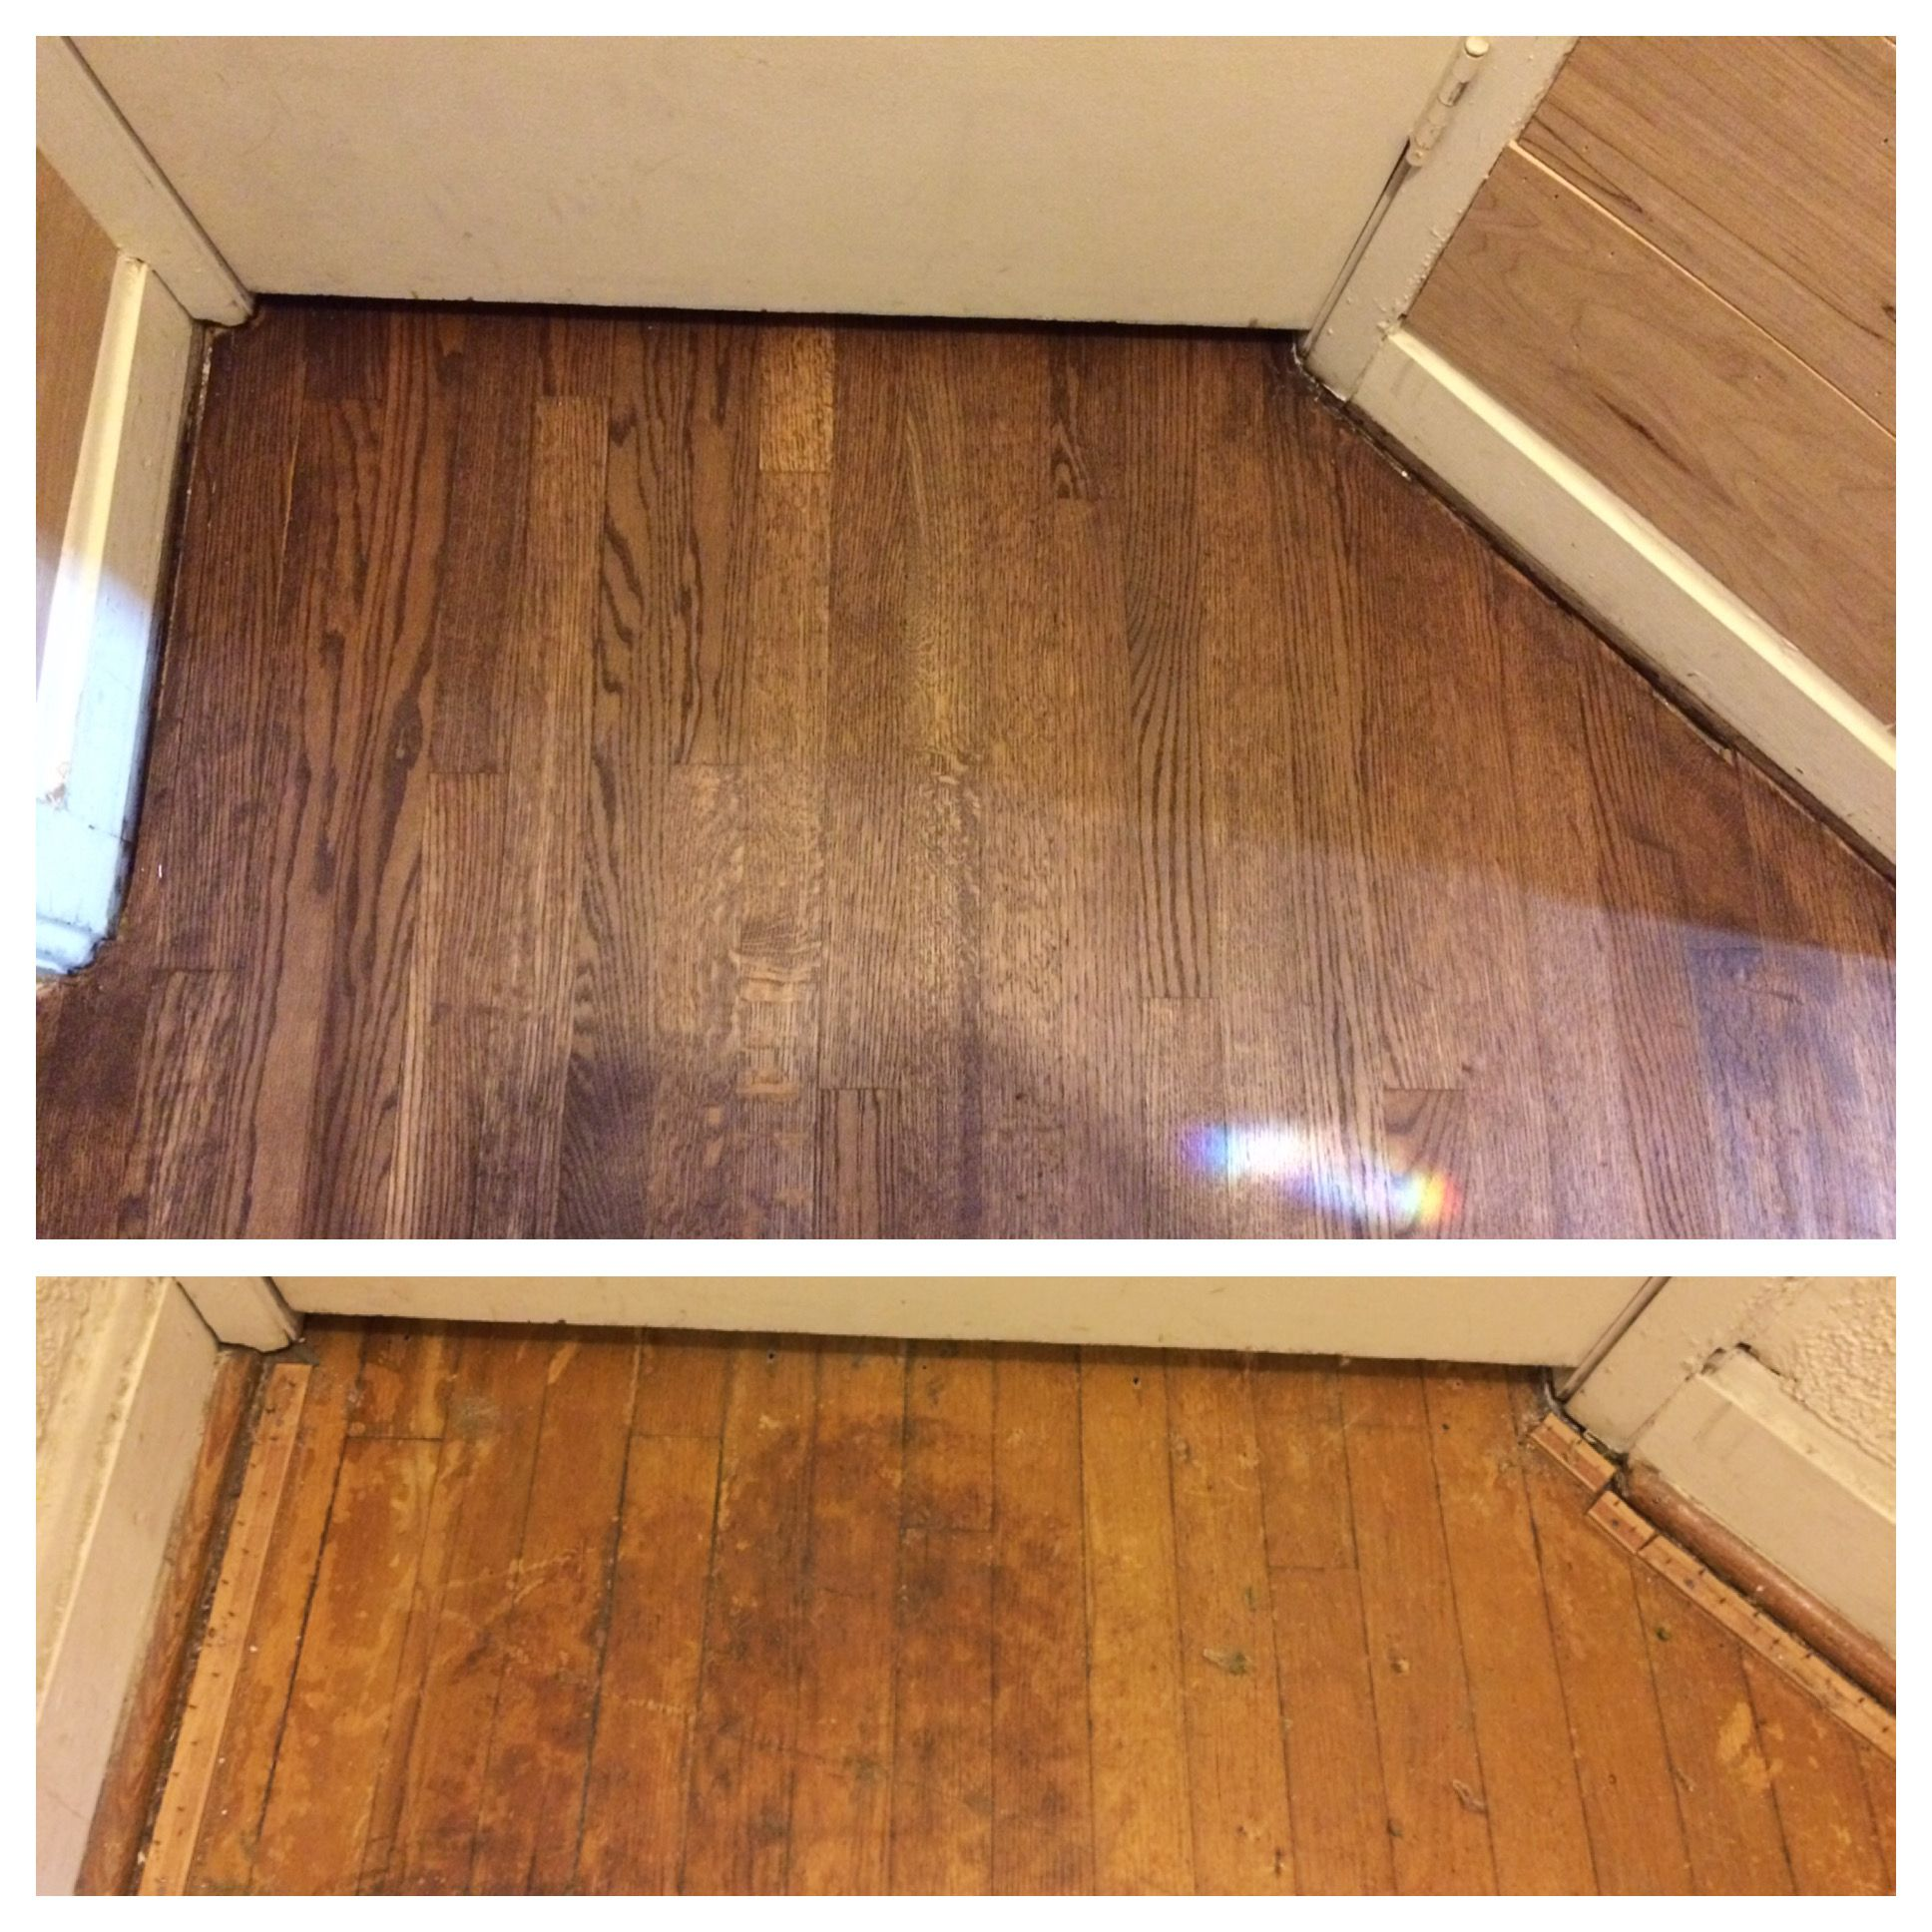 hardwood long wood it does project valenti flooring blog floor refinishing how floors img refinish take